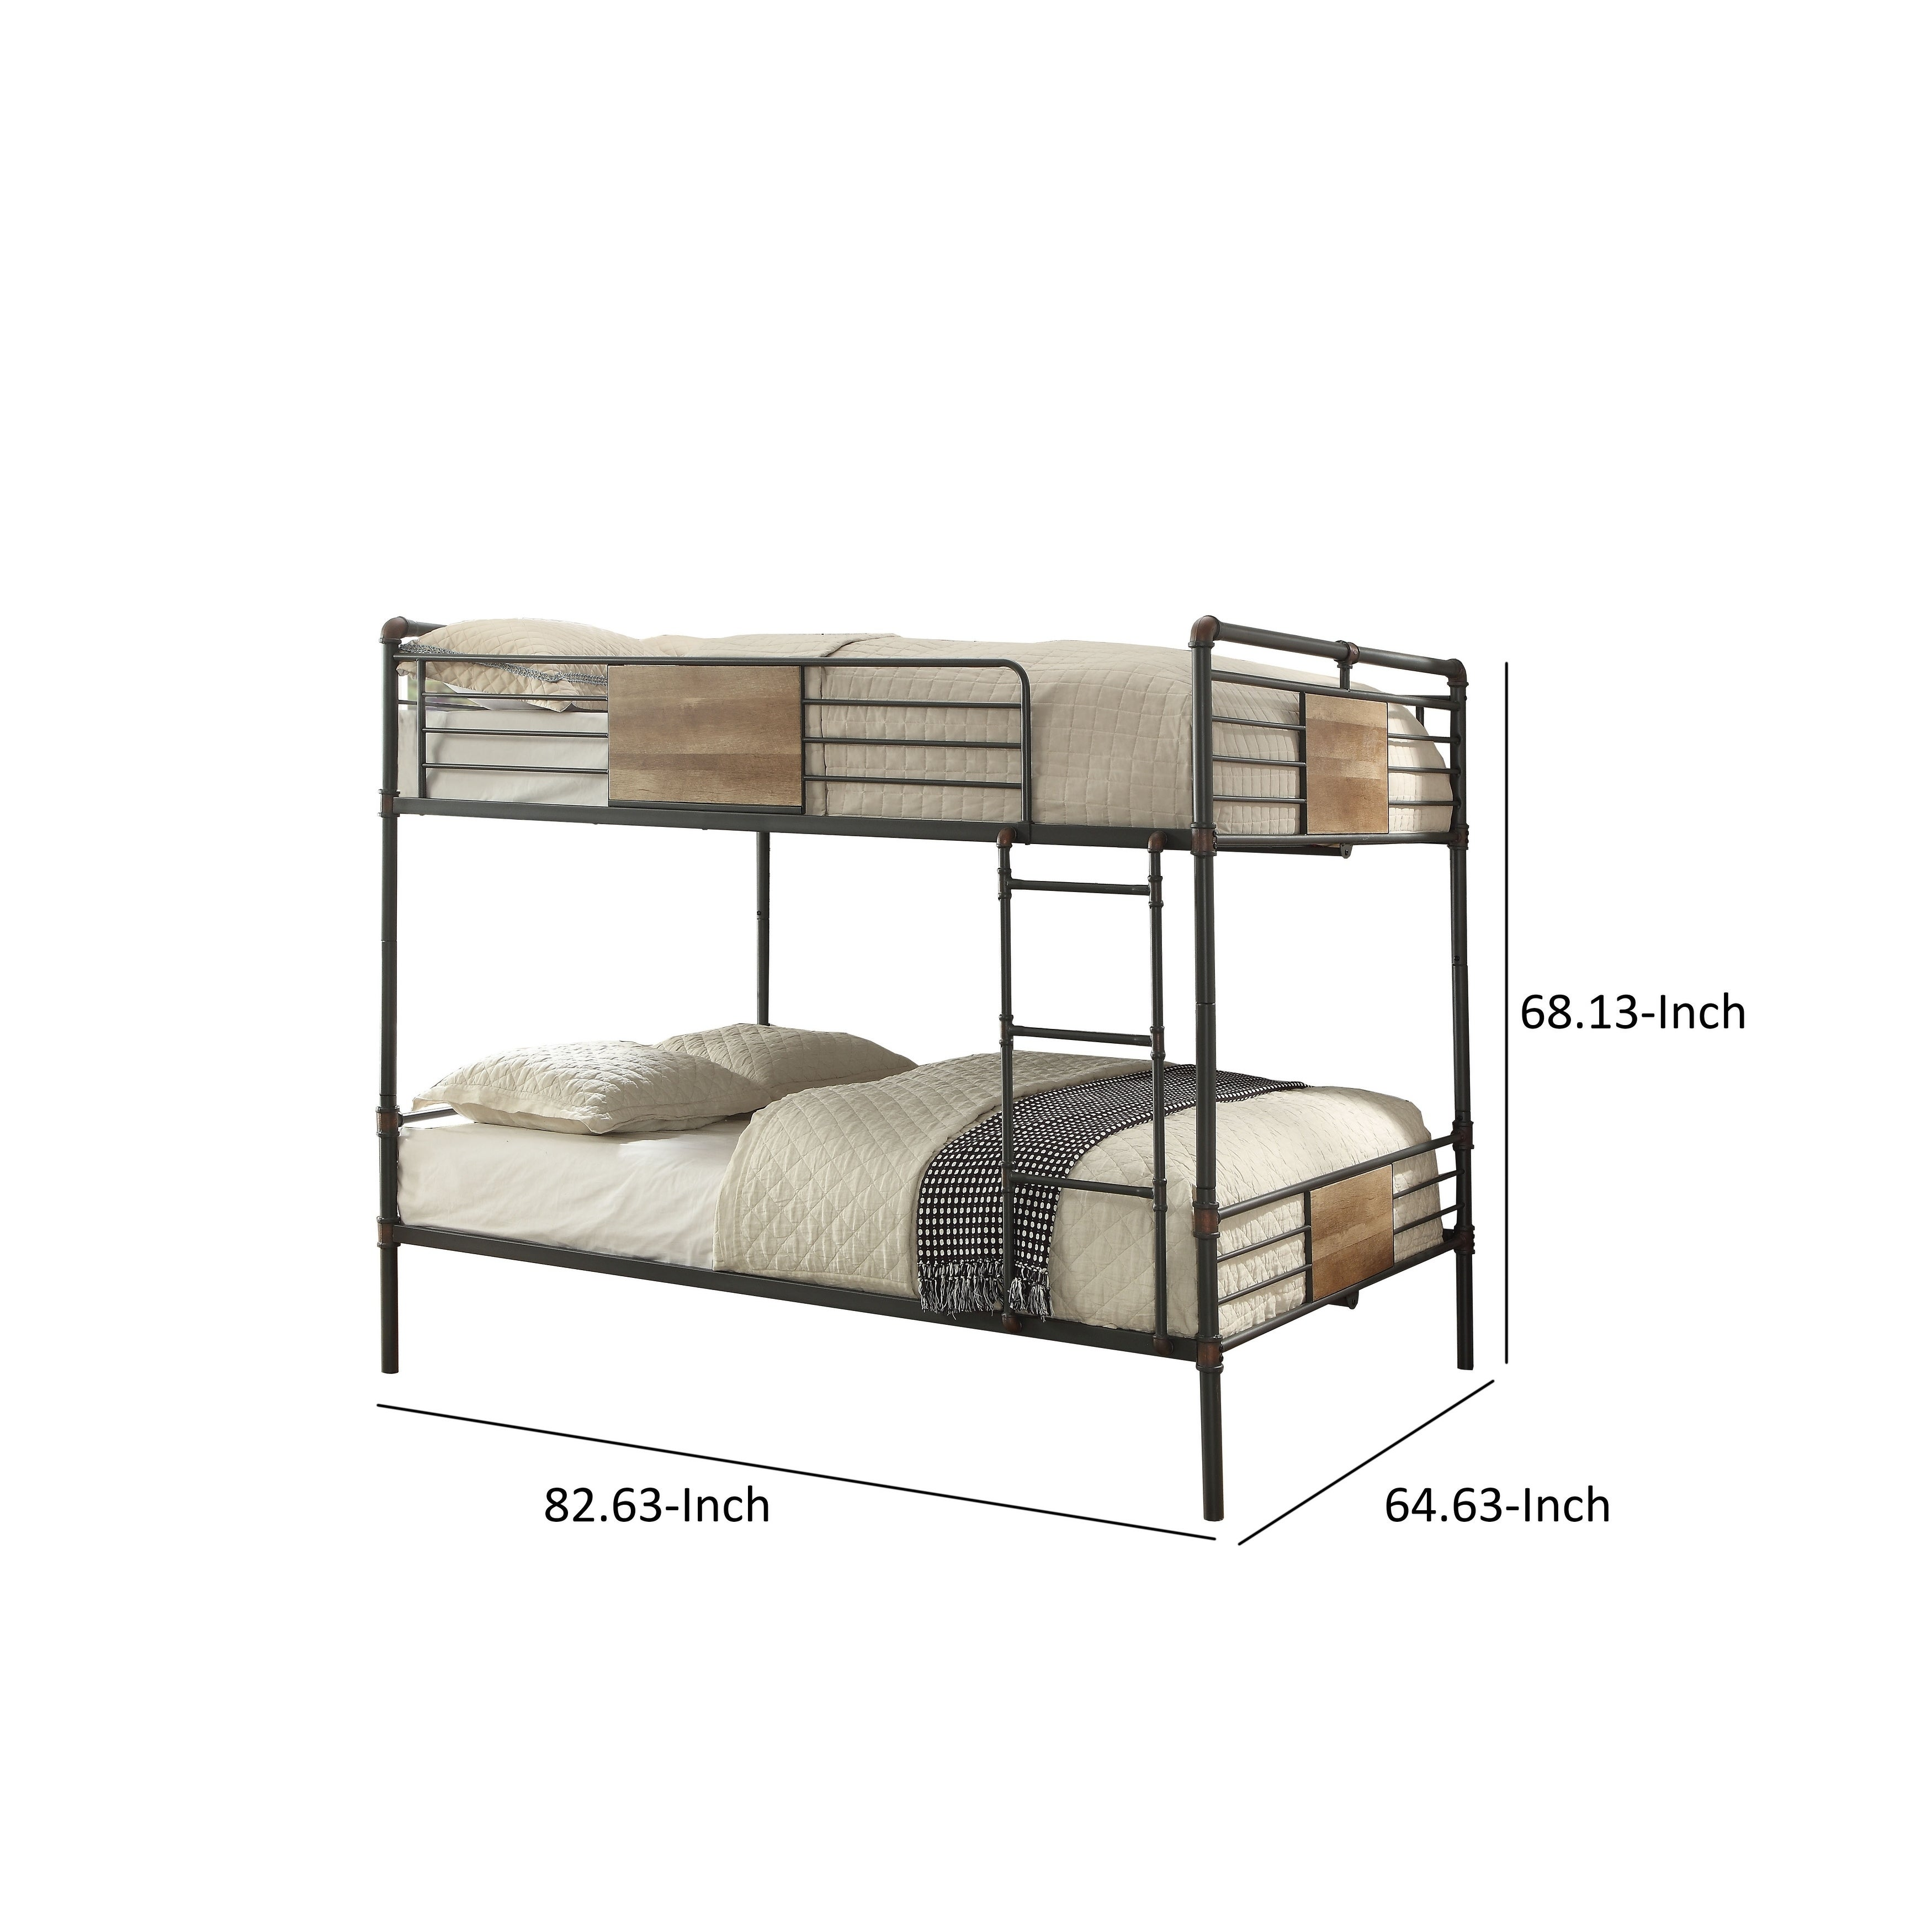 Picture of: Queen Over Queen Size Metal Bunk Bed With Ladder Black And Brown On Sale Overstock 29714214